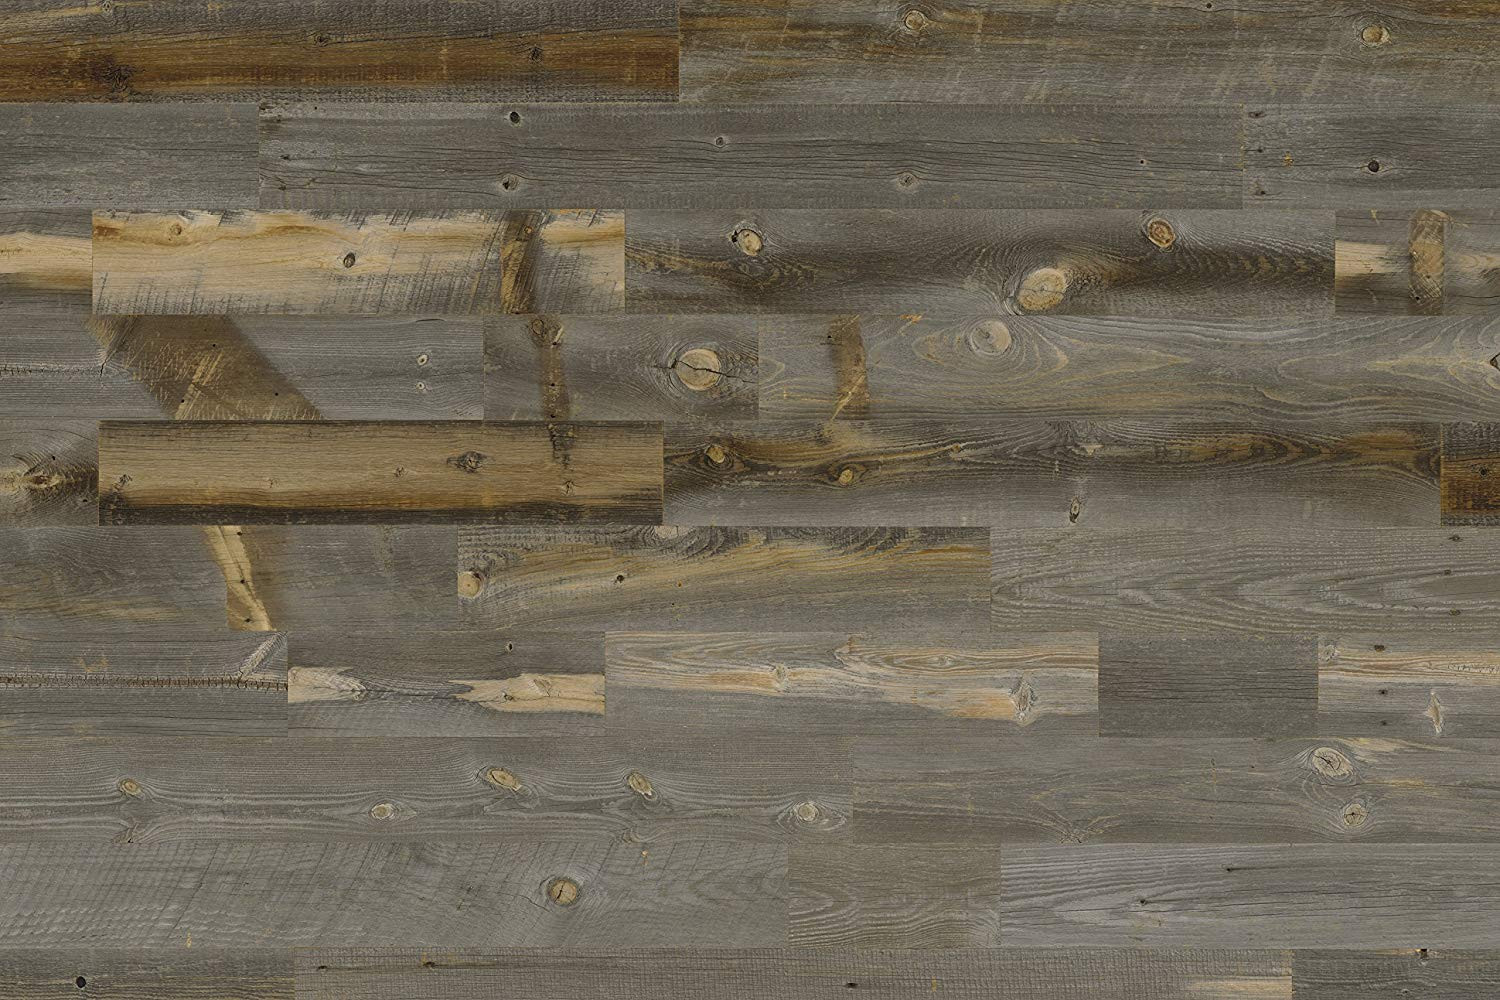 How Much Does It Cost for Hardwood Floors 1500 Sf Of Amazon Com Stikwood Reclaimed Weathered Wood Silver Gray Brown 20 with Regard to Amazon Com Stikwood Reclaimed Weathered Wood Silver Gray Brown 20 Square Feet Easy Peel and Stick Application Baby